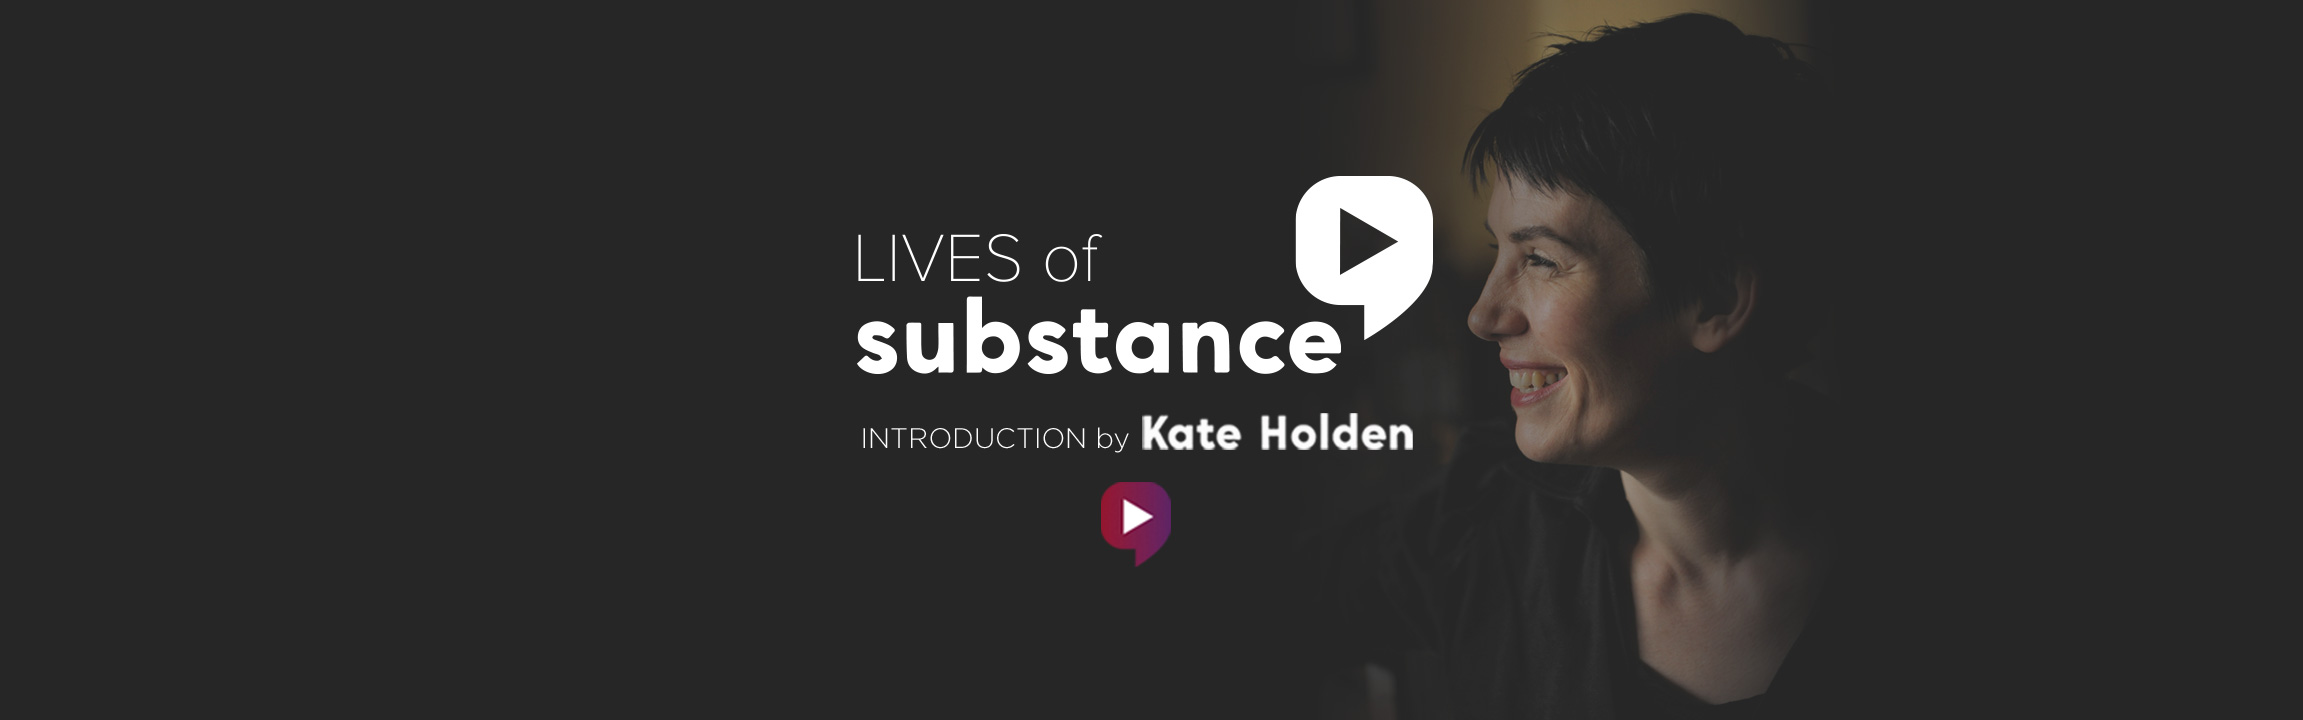 Kate Holden. Lives of Substance video intro